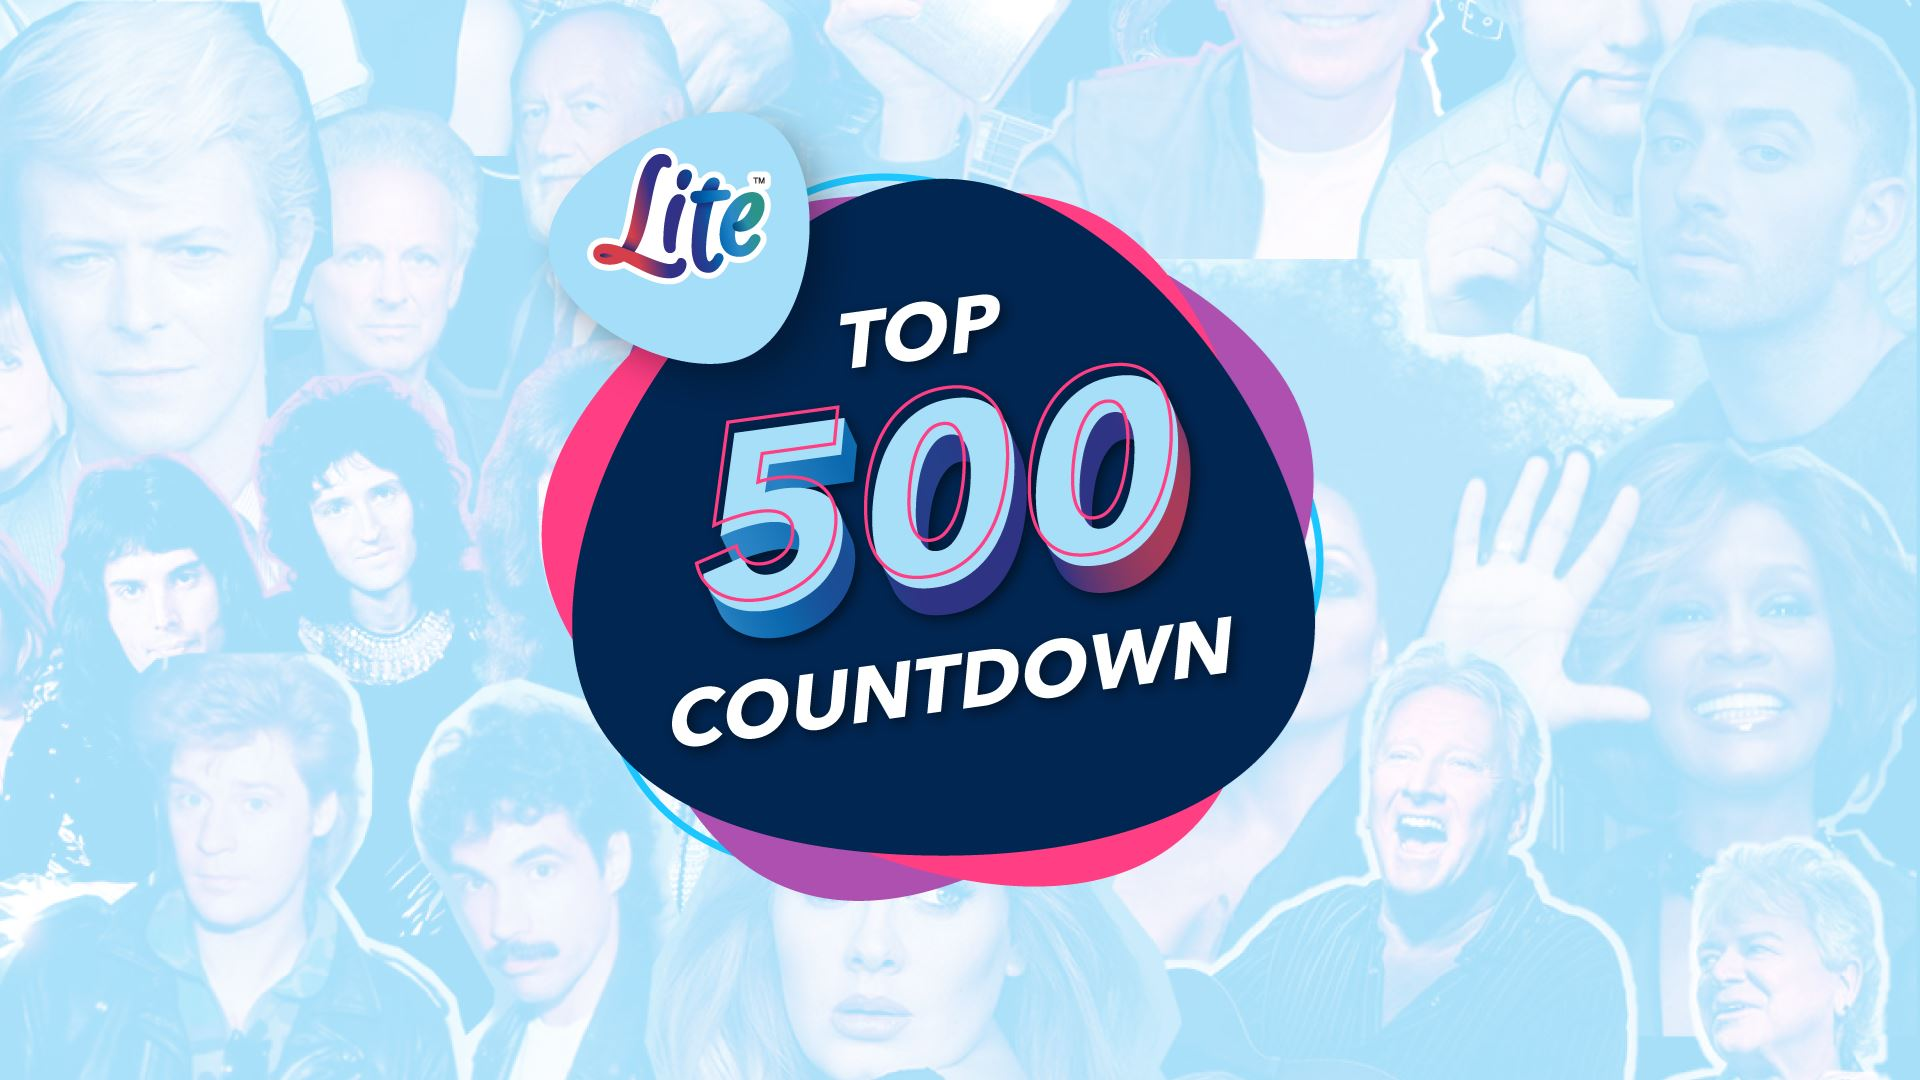 lite top 500 countdown